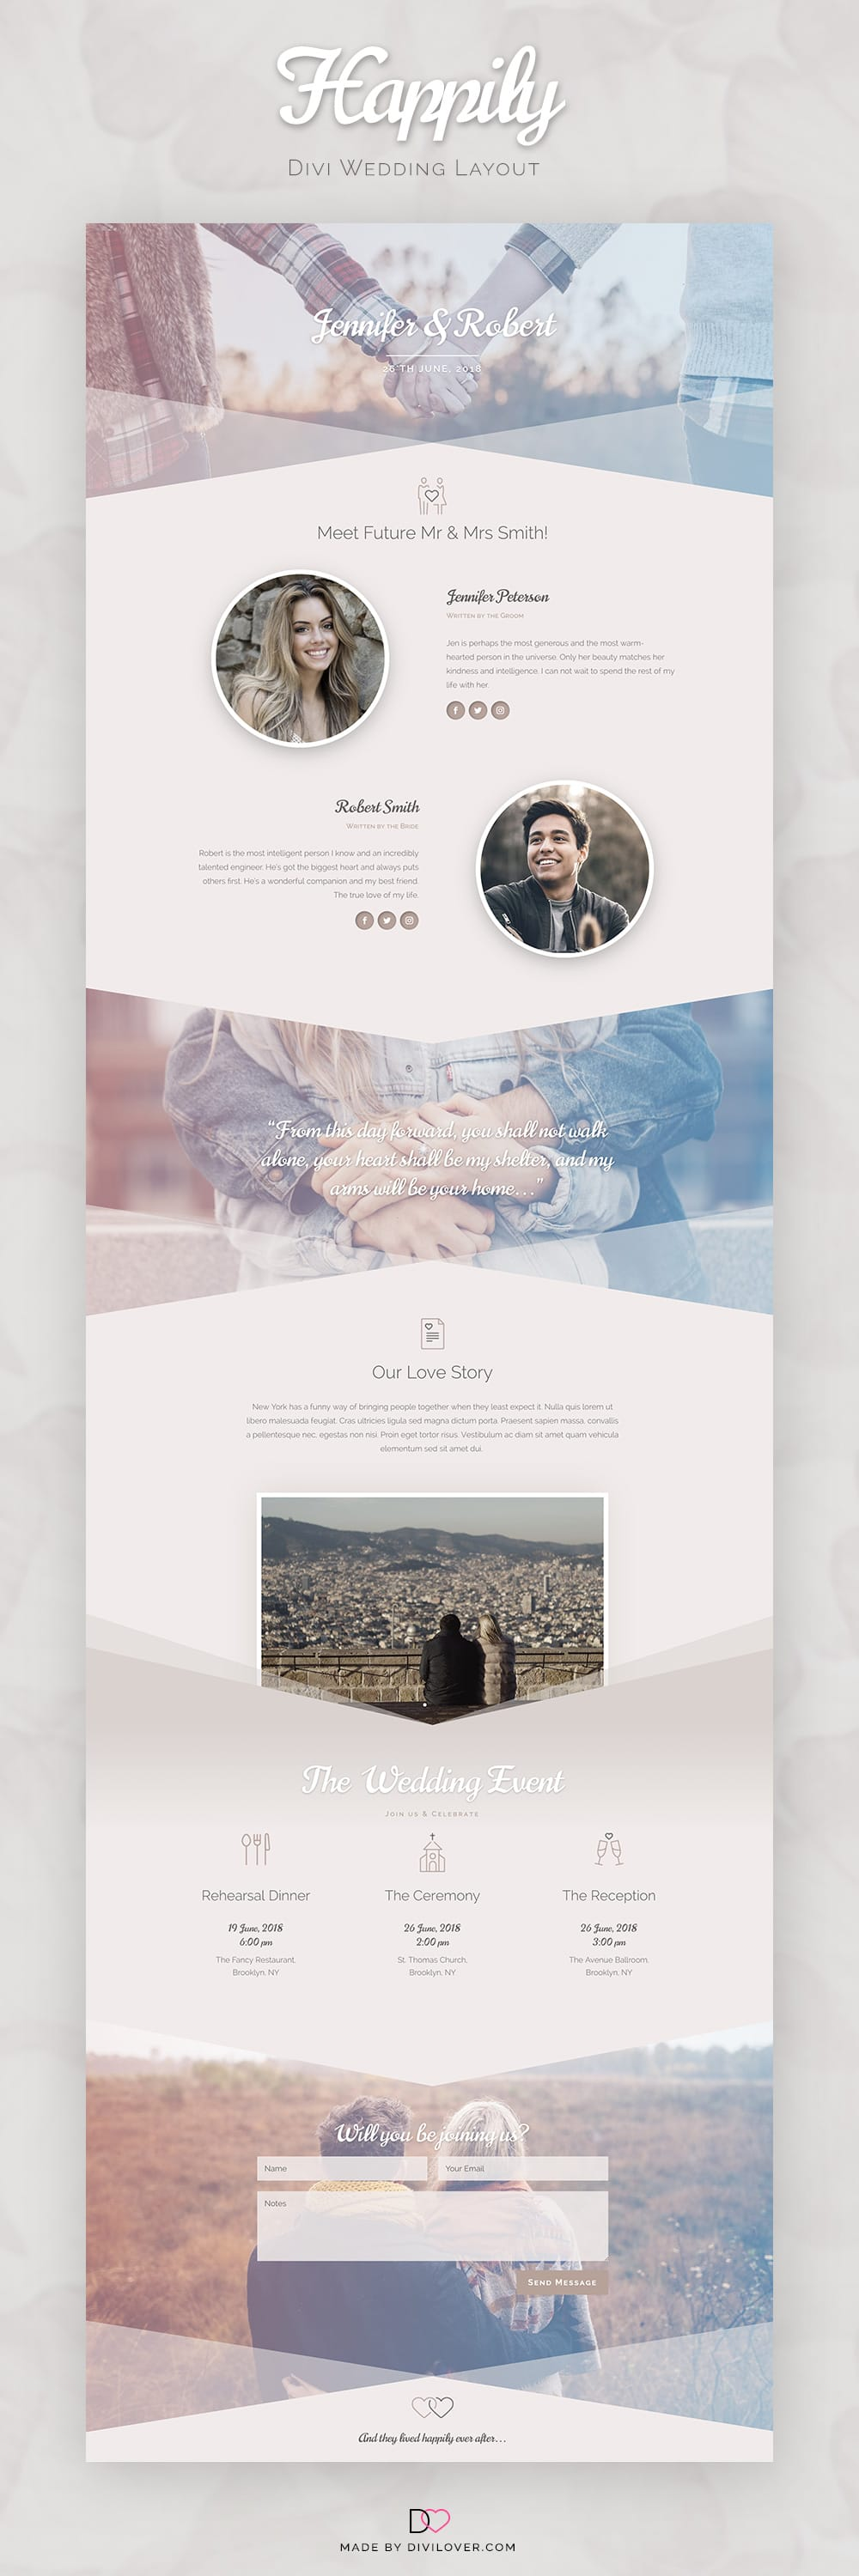 Happily: A Free Divi Wedding Page Layout ~ Divi Lover